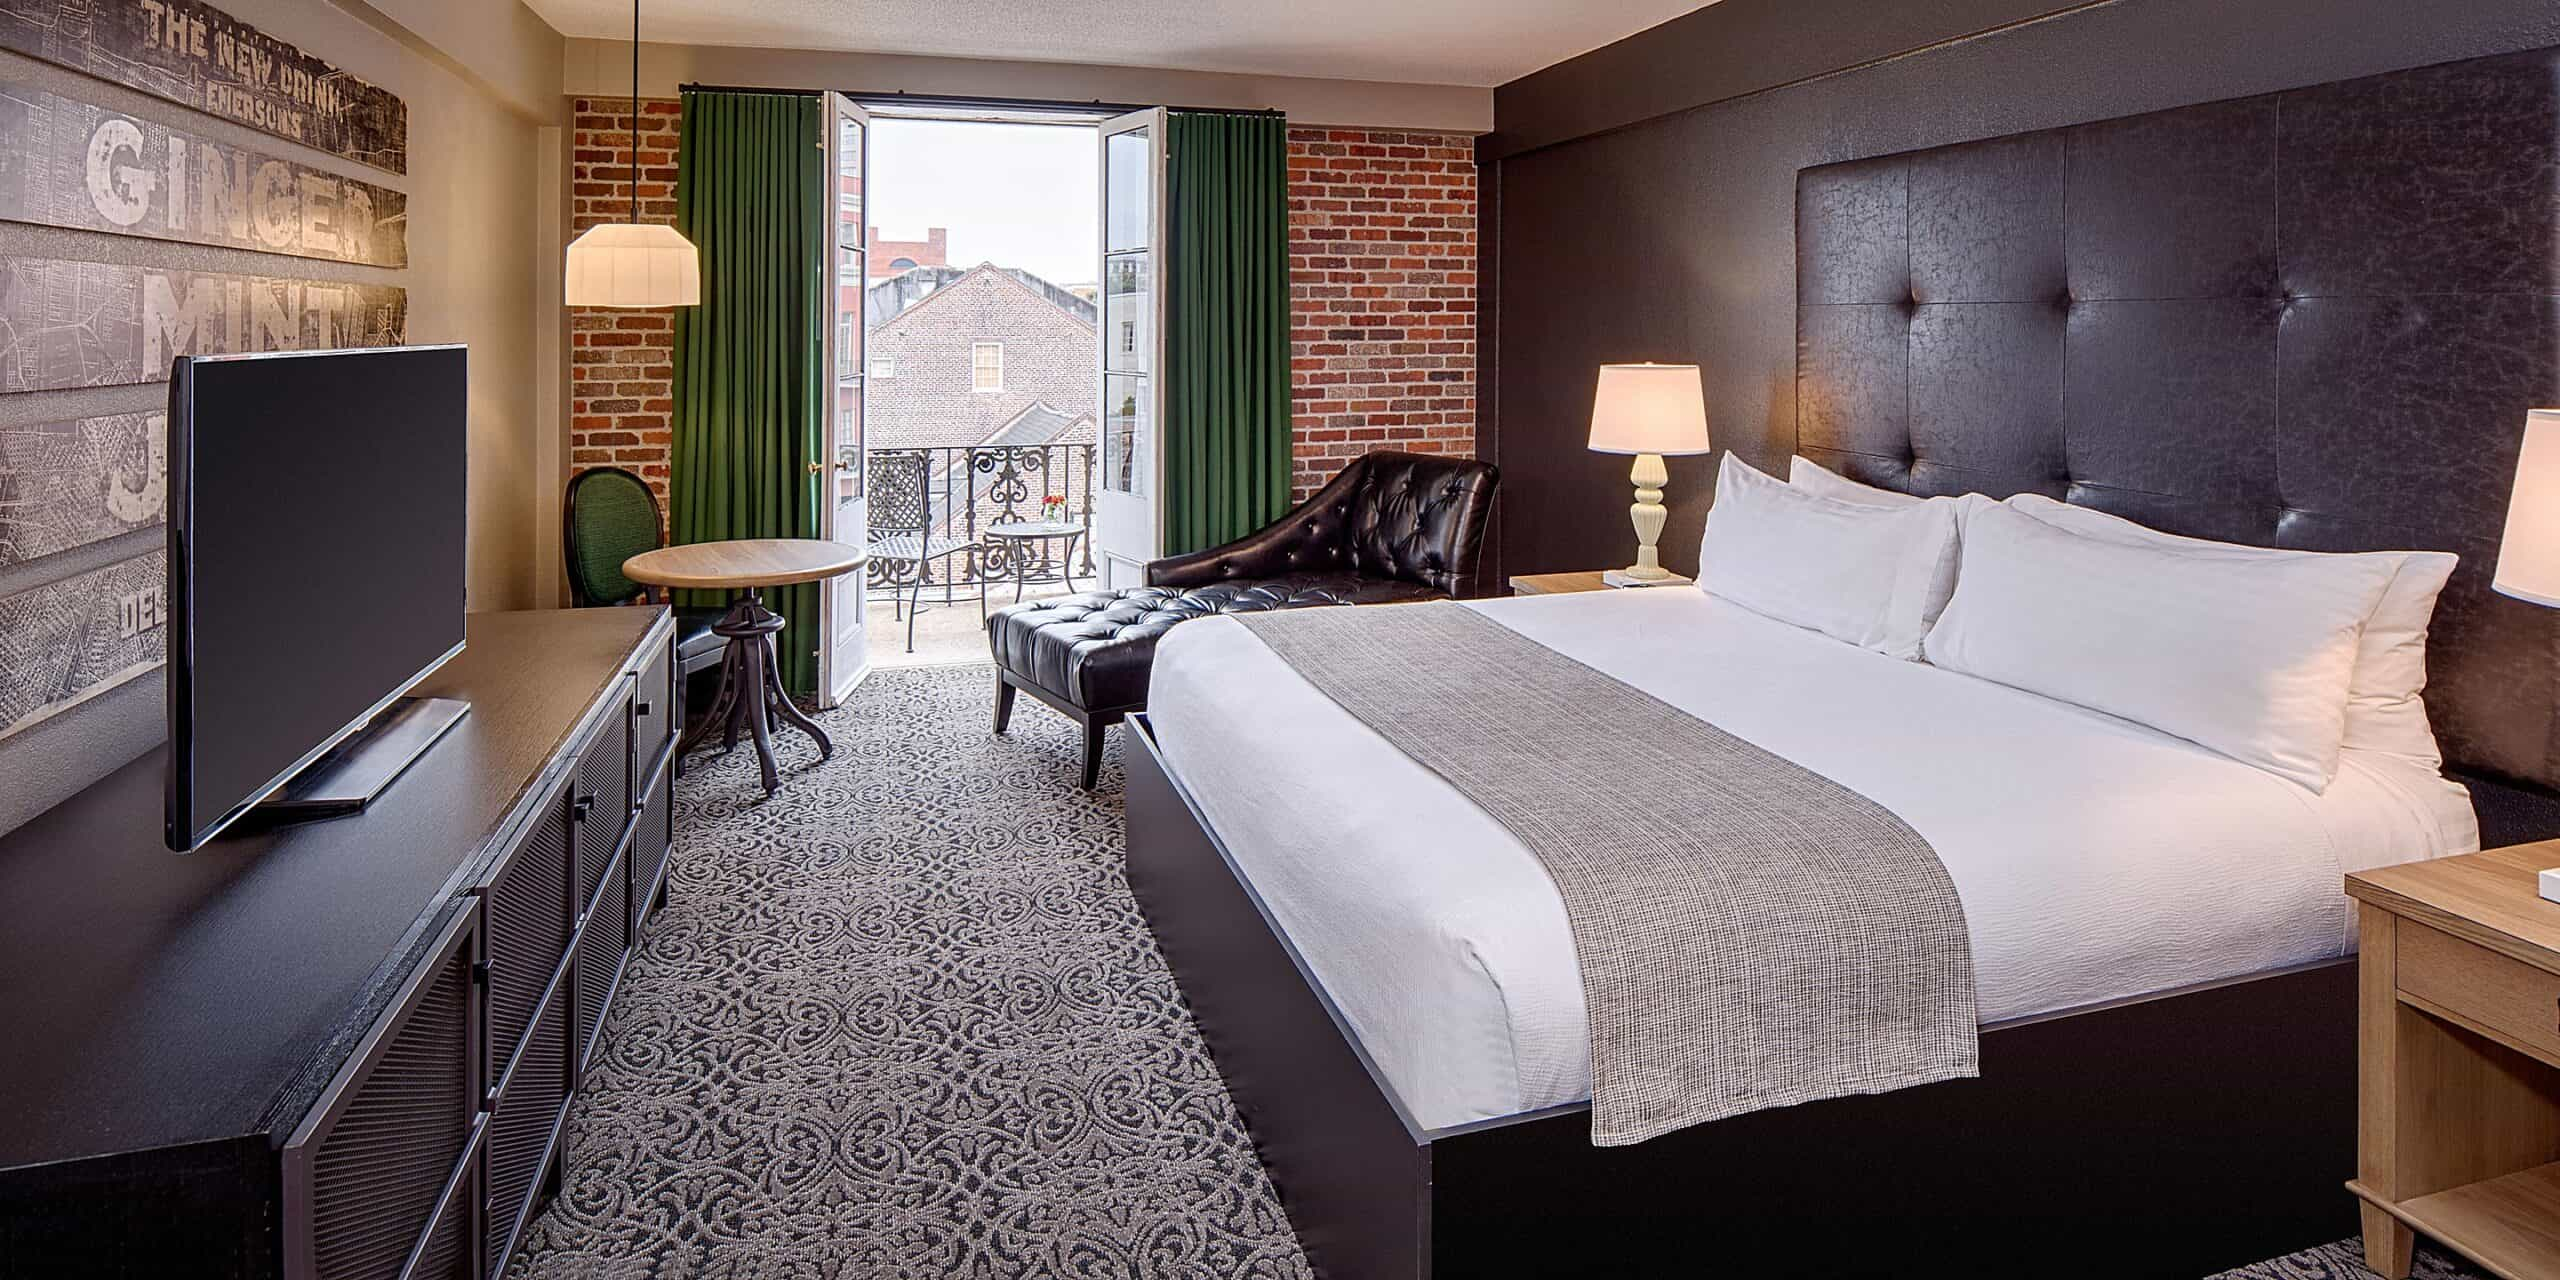 Best Hotels In French Quarter / Holiday Inn Hotel French Quarter